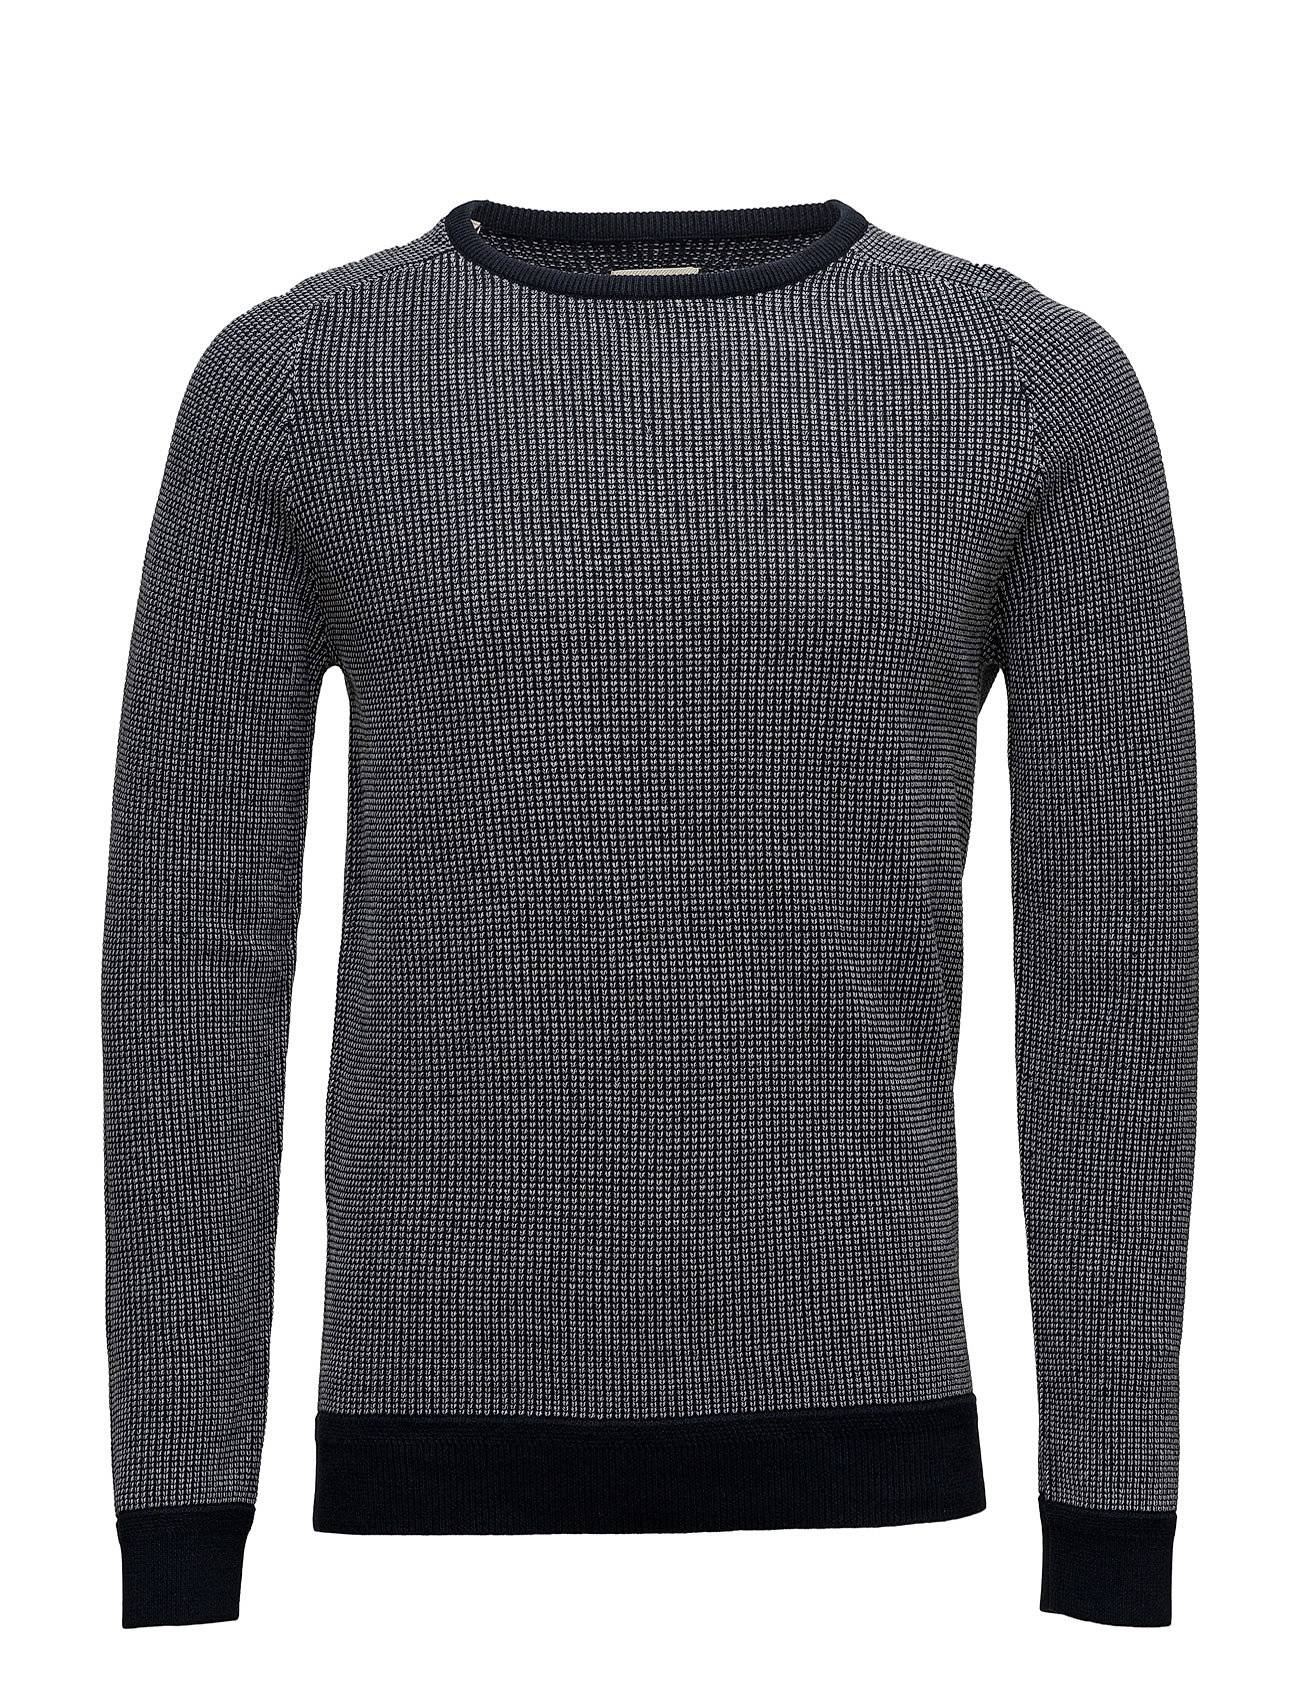 Selected Homme Shhjeppe Crew Neck